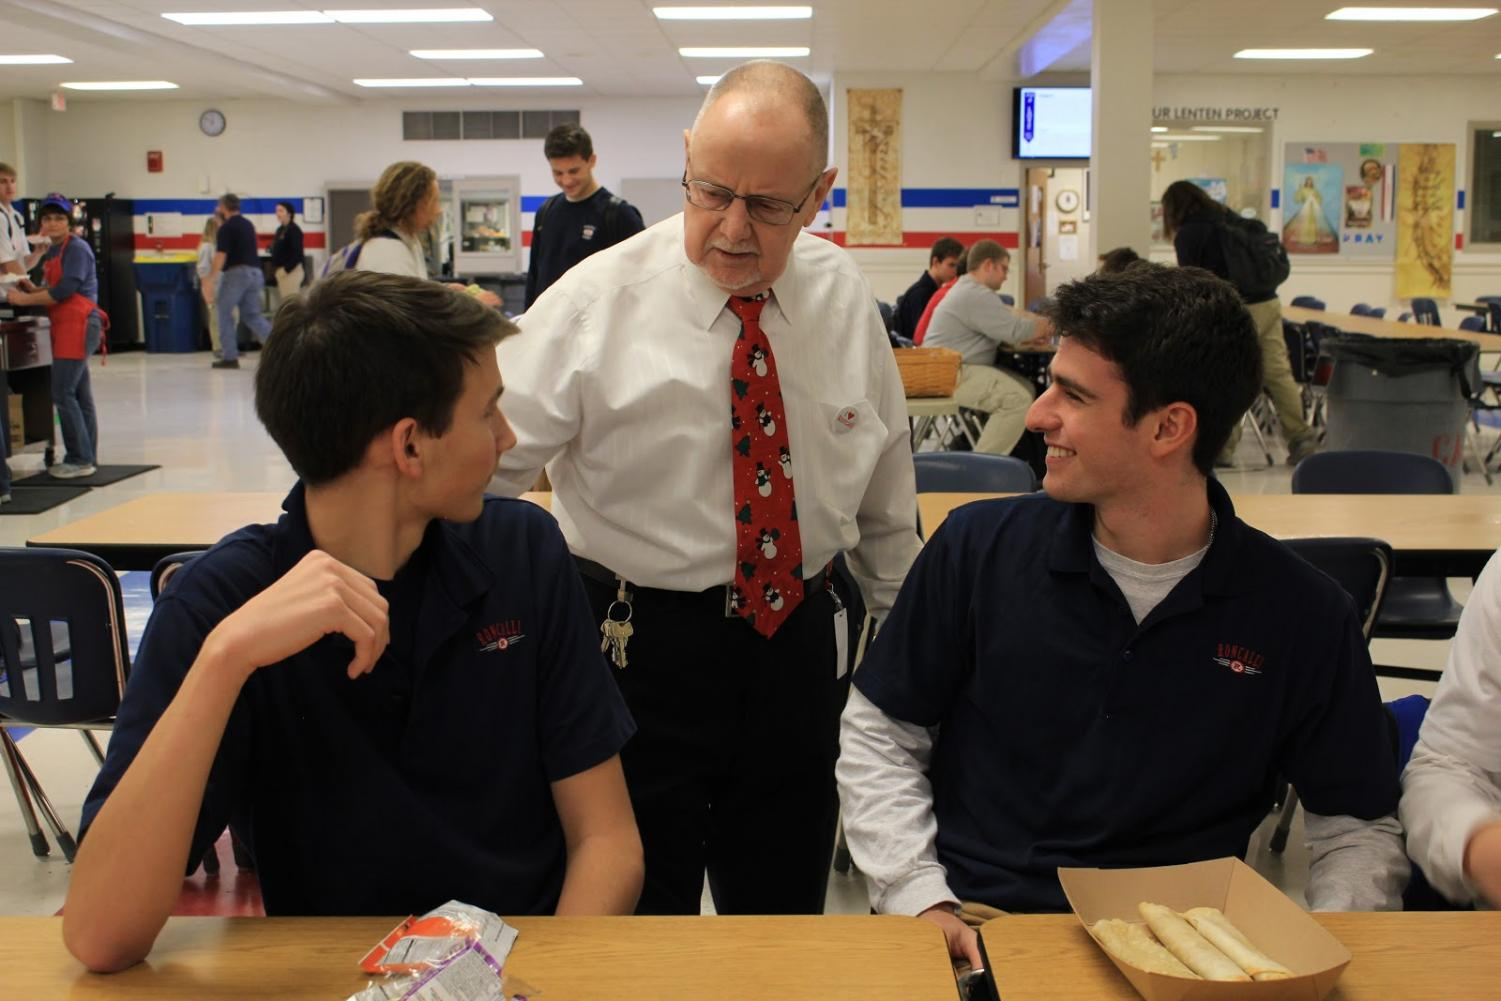 FRIENDLY FACES: Mr. Bob Tully checks in on seniors Ryan Burns and Wes Cunningham during 5A lunch. Tully makes conversation with anyone and everyone that he meets.